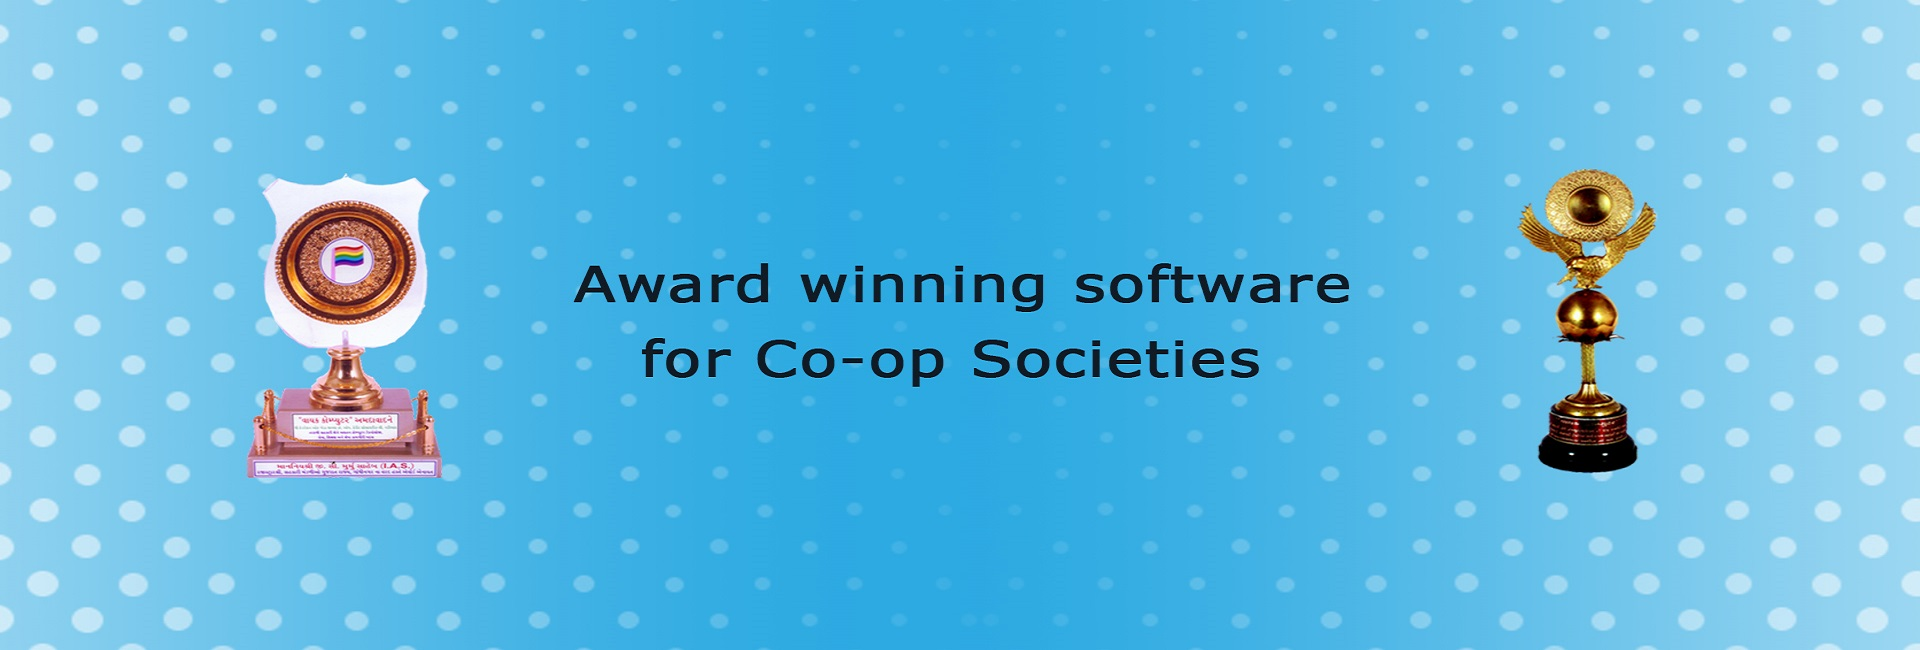 award winning credit coop society software vayak